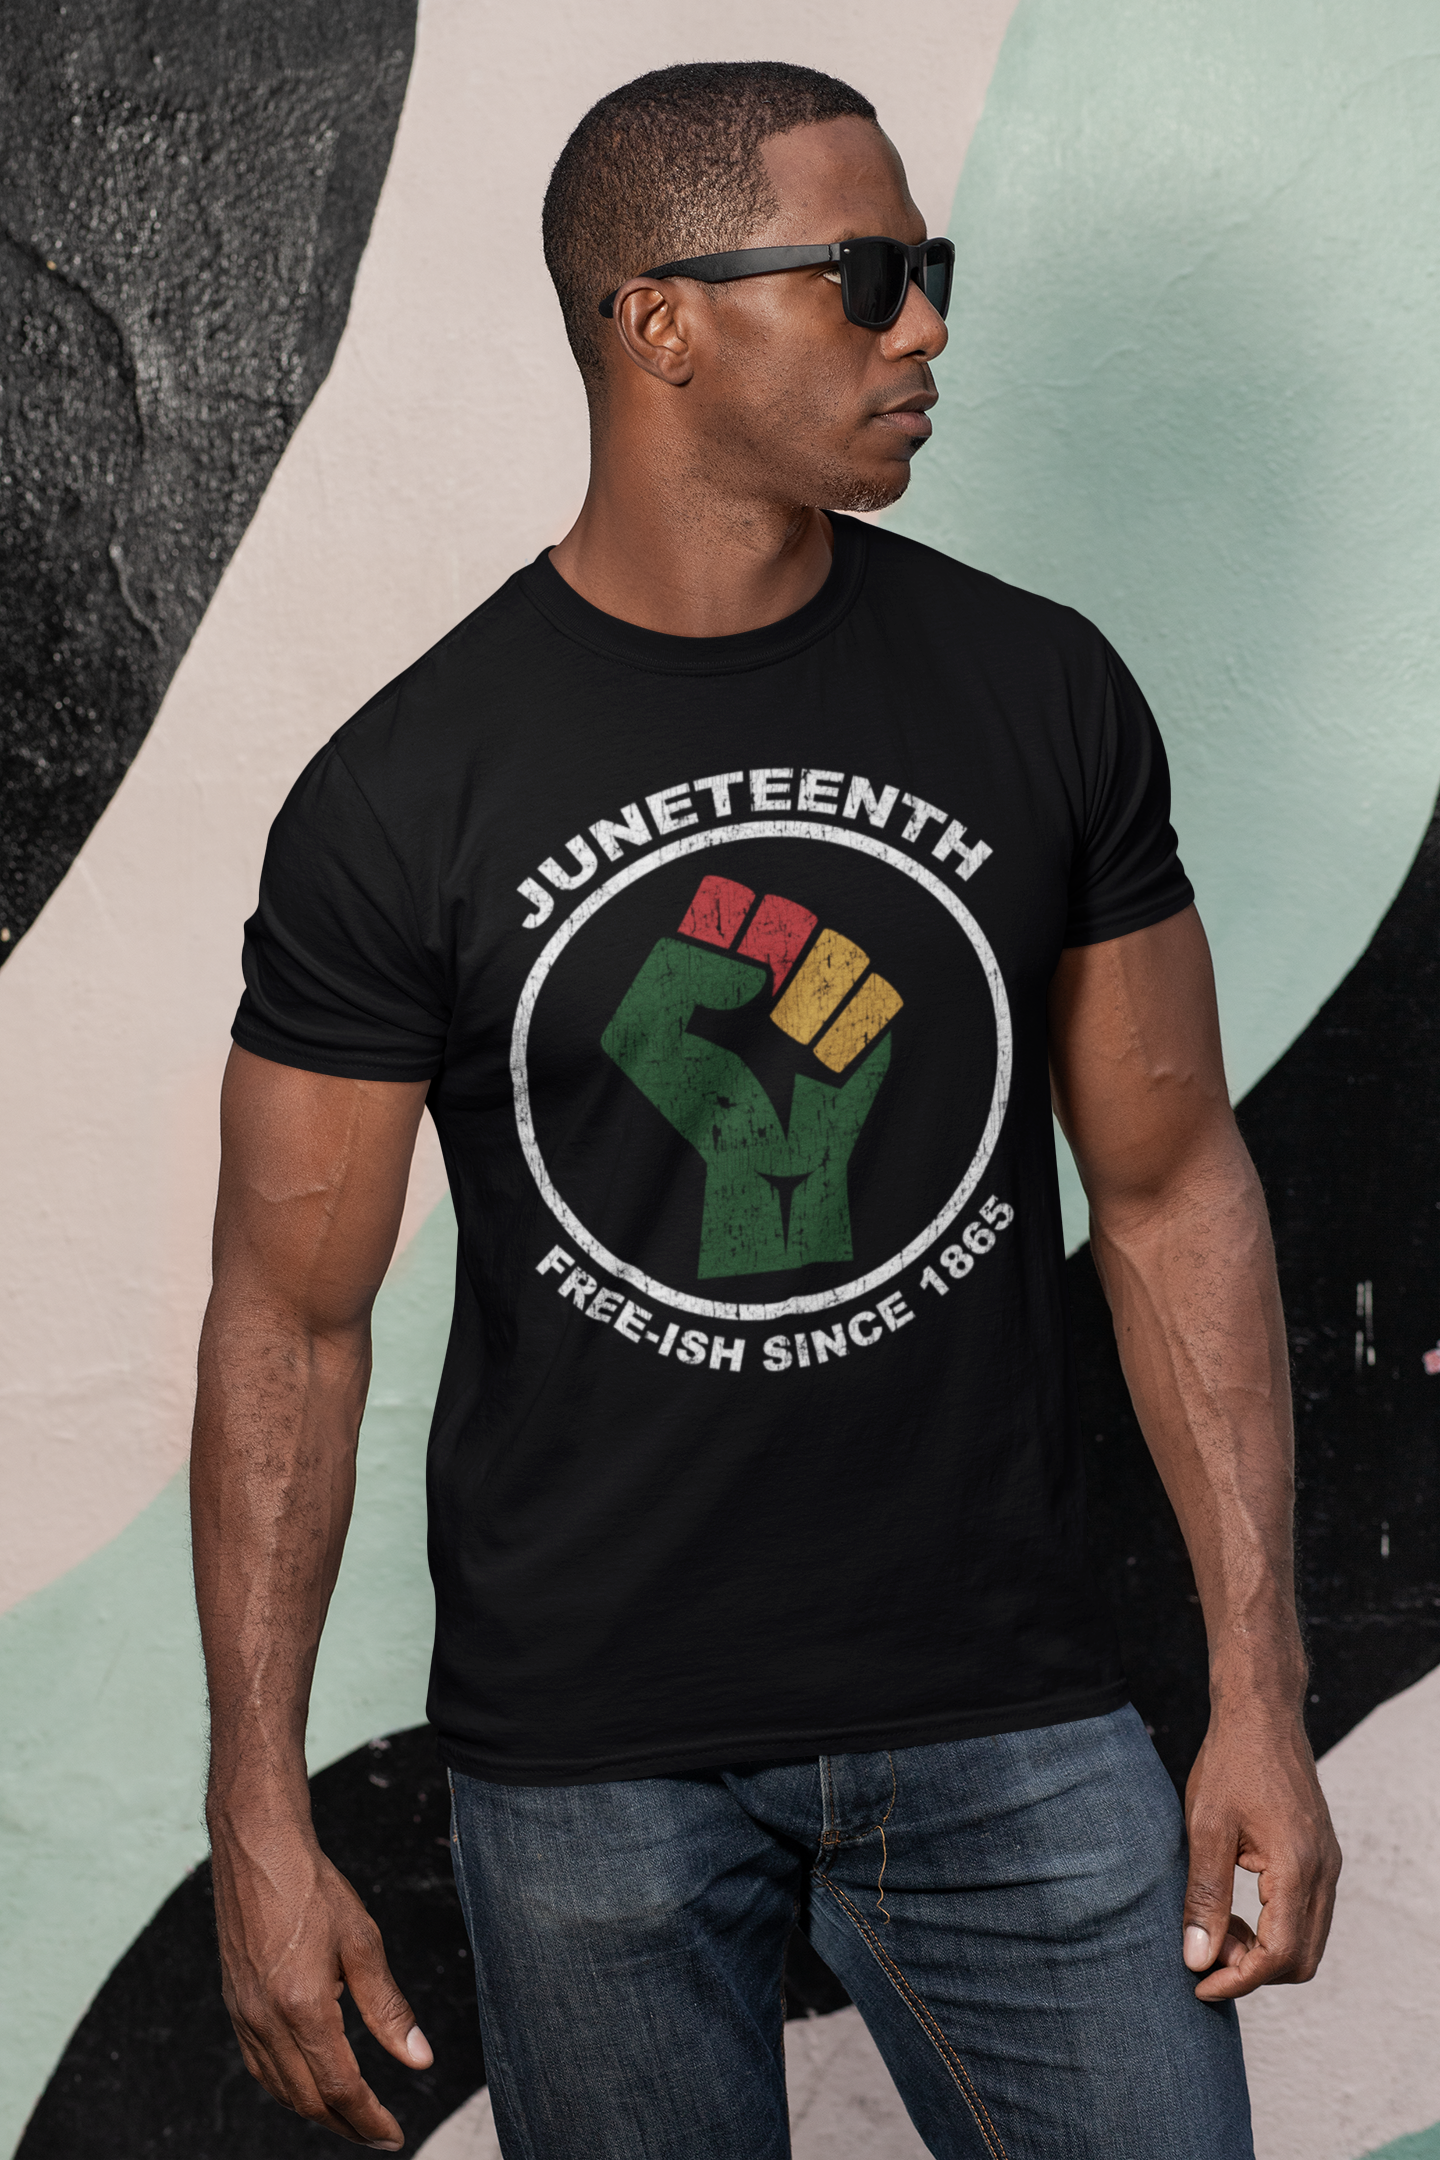 Shirt for Men and Women in 2020 Shirts, T